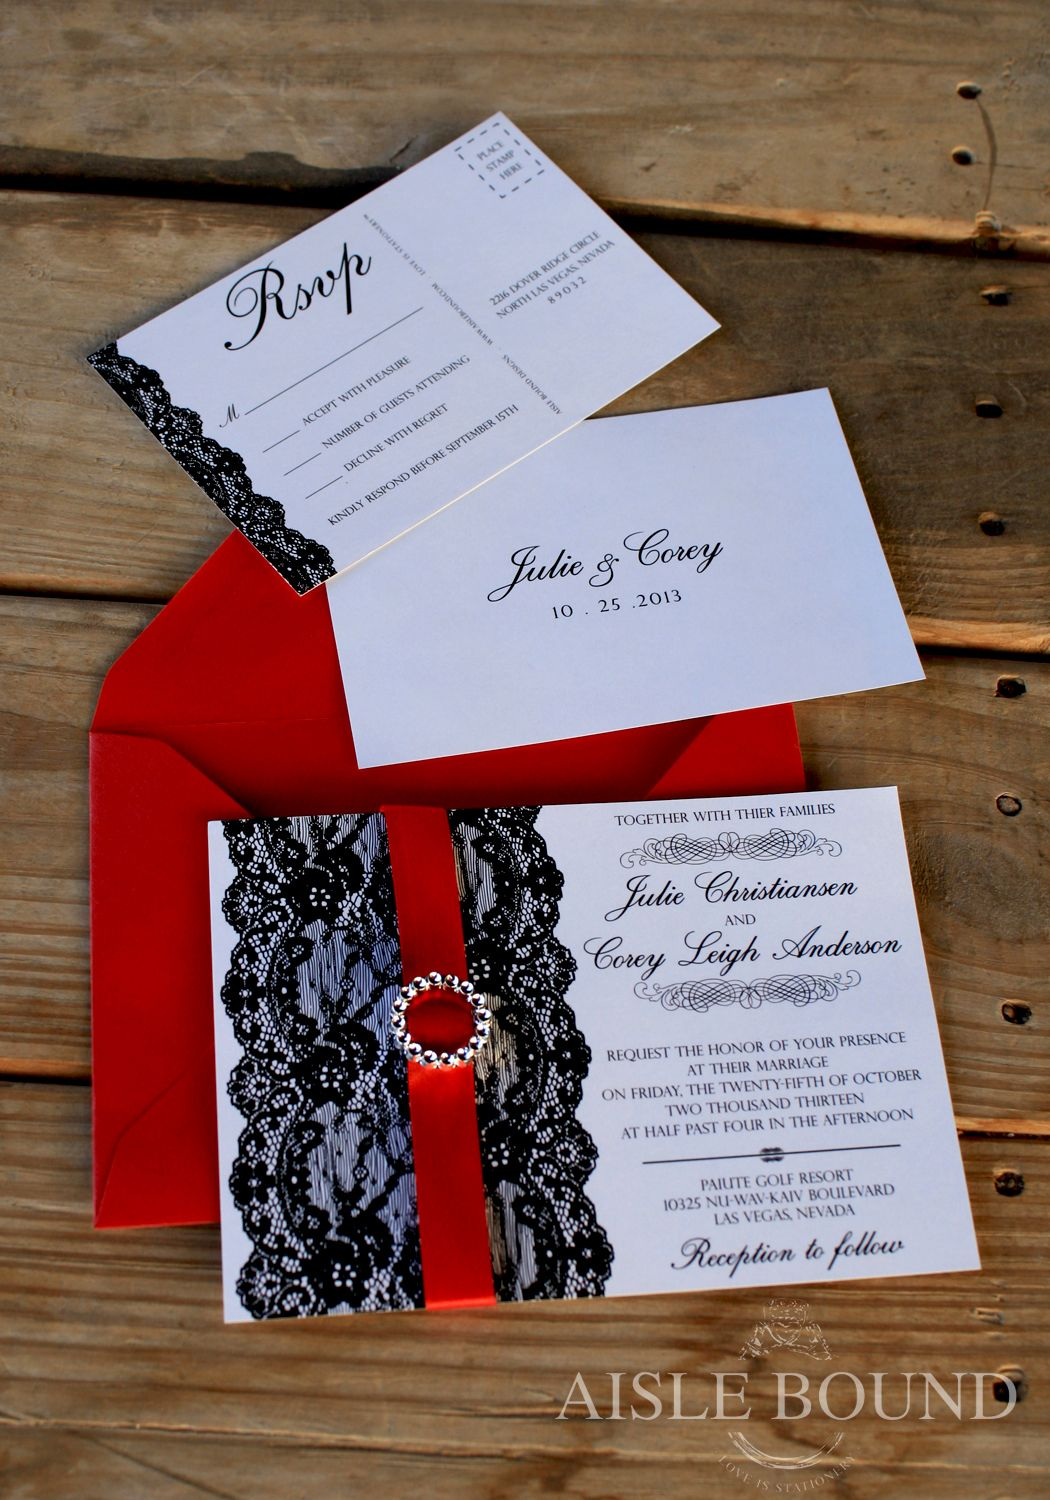 Vintage Hollywood Wedding Invitation Metallic Red Envelope